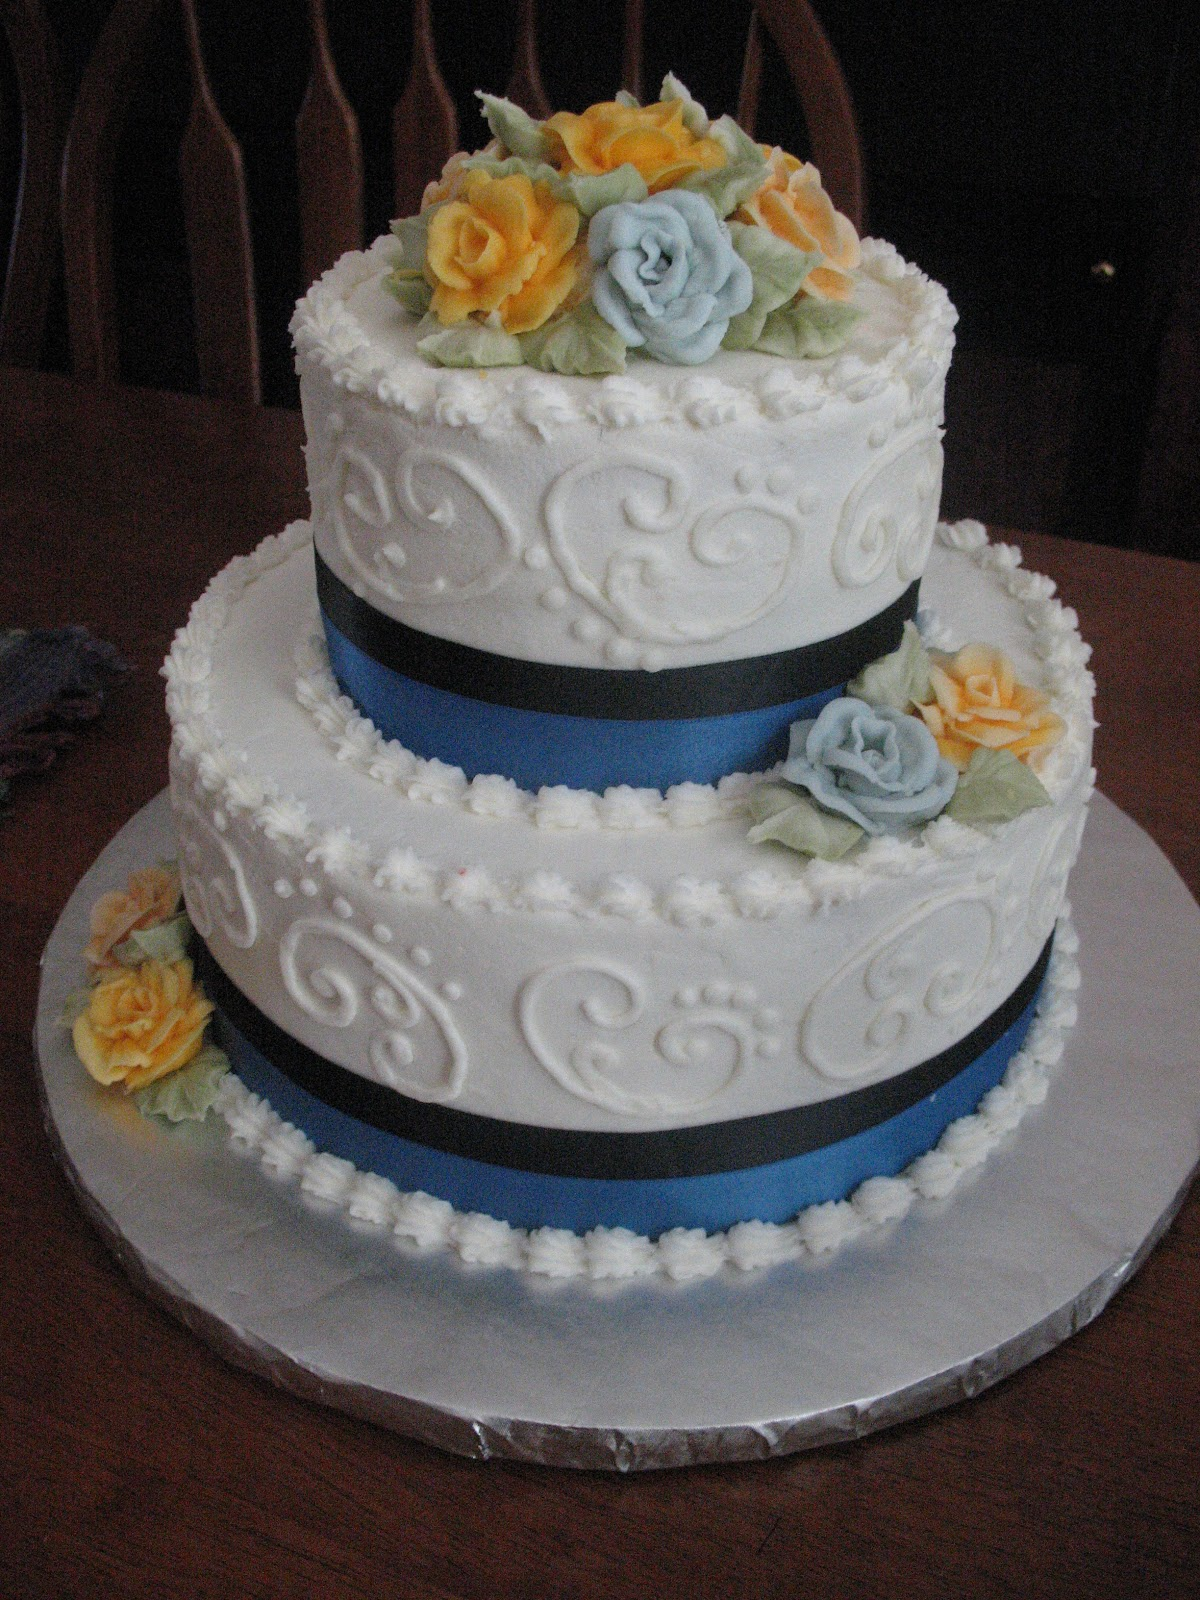 Cake Pictures For Anniversary : Wedding Cakes By Mary Ann: Blue/Navy Blue Anniversary Cake